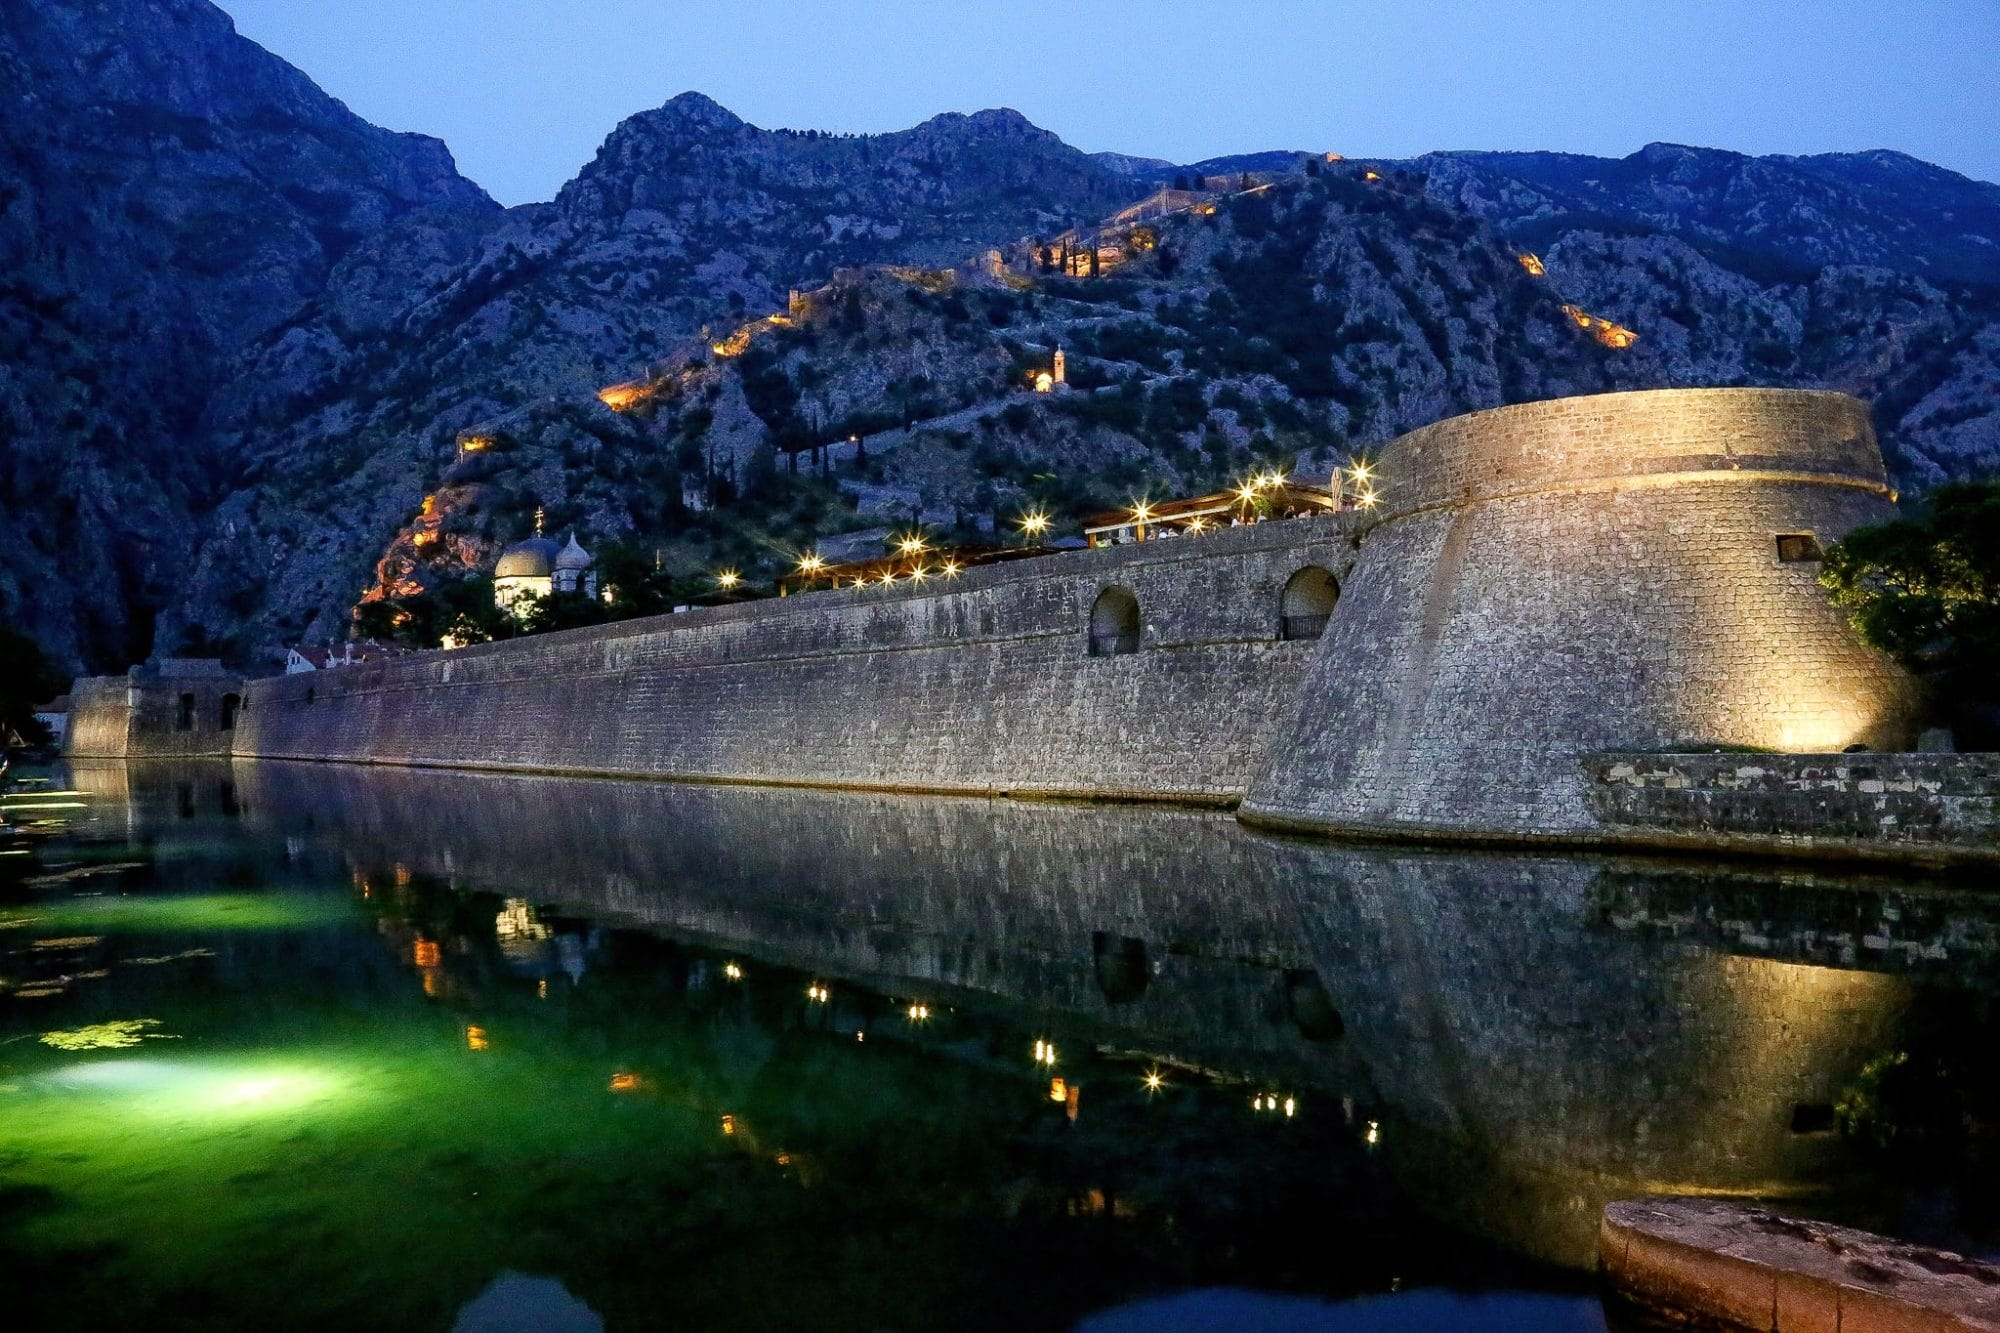 Living in Kotor, Montenegro means being surrounded by a UNESCO world heritage site.